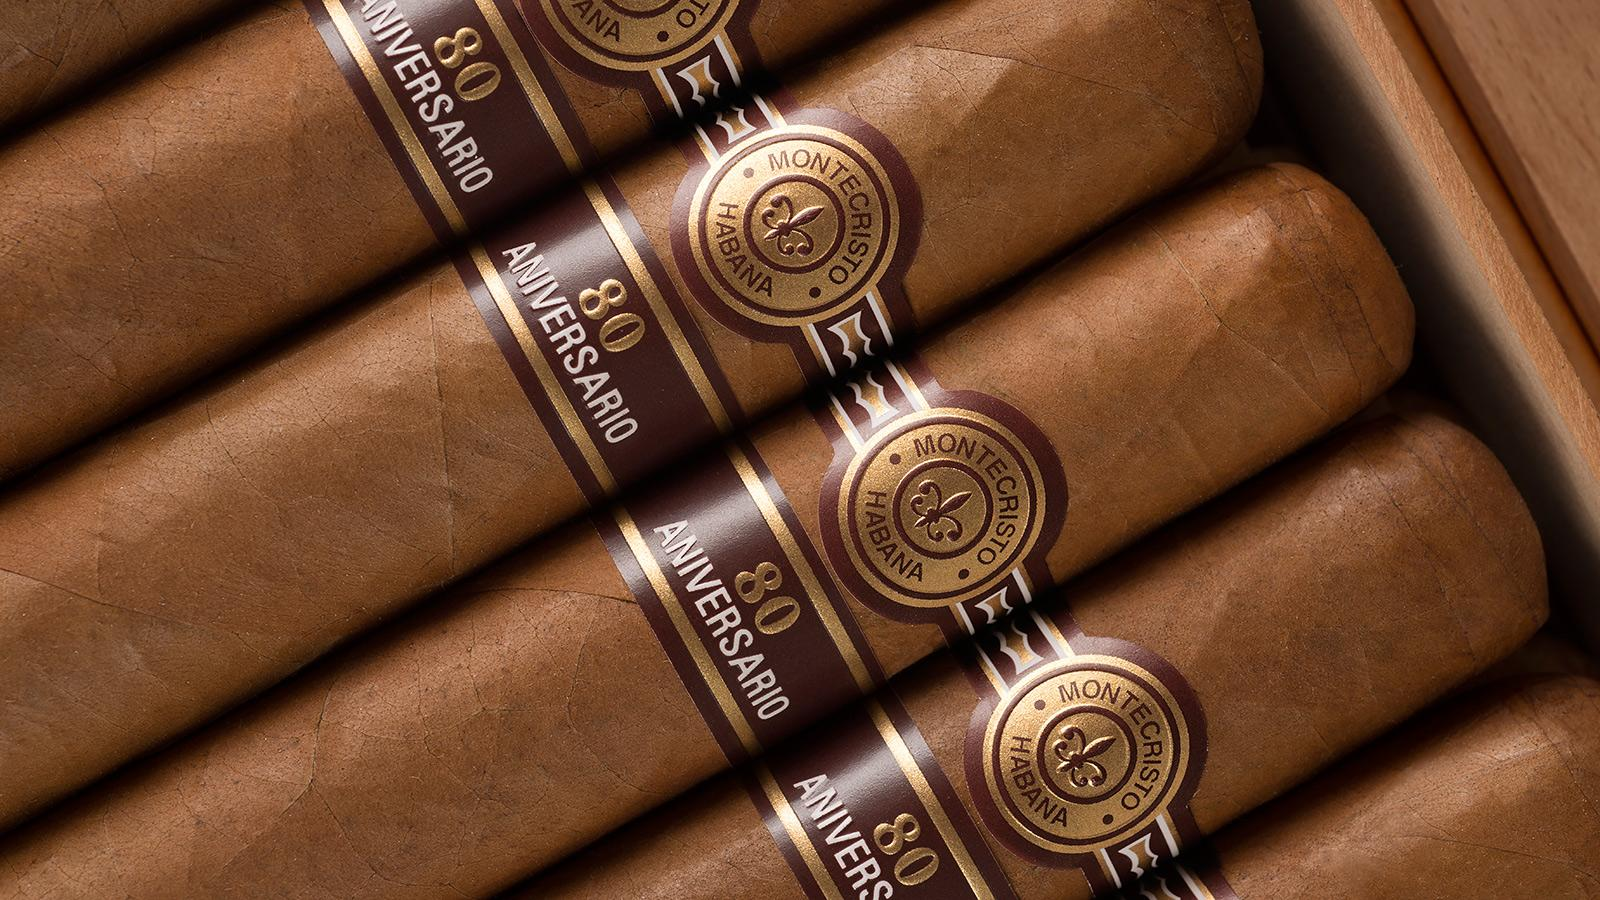 New Releases From Habanos: What's Out And What's Coming